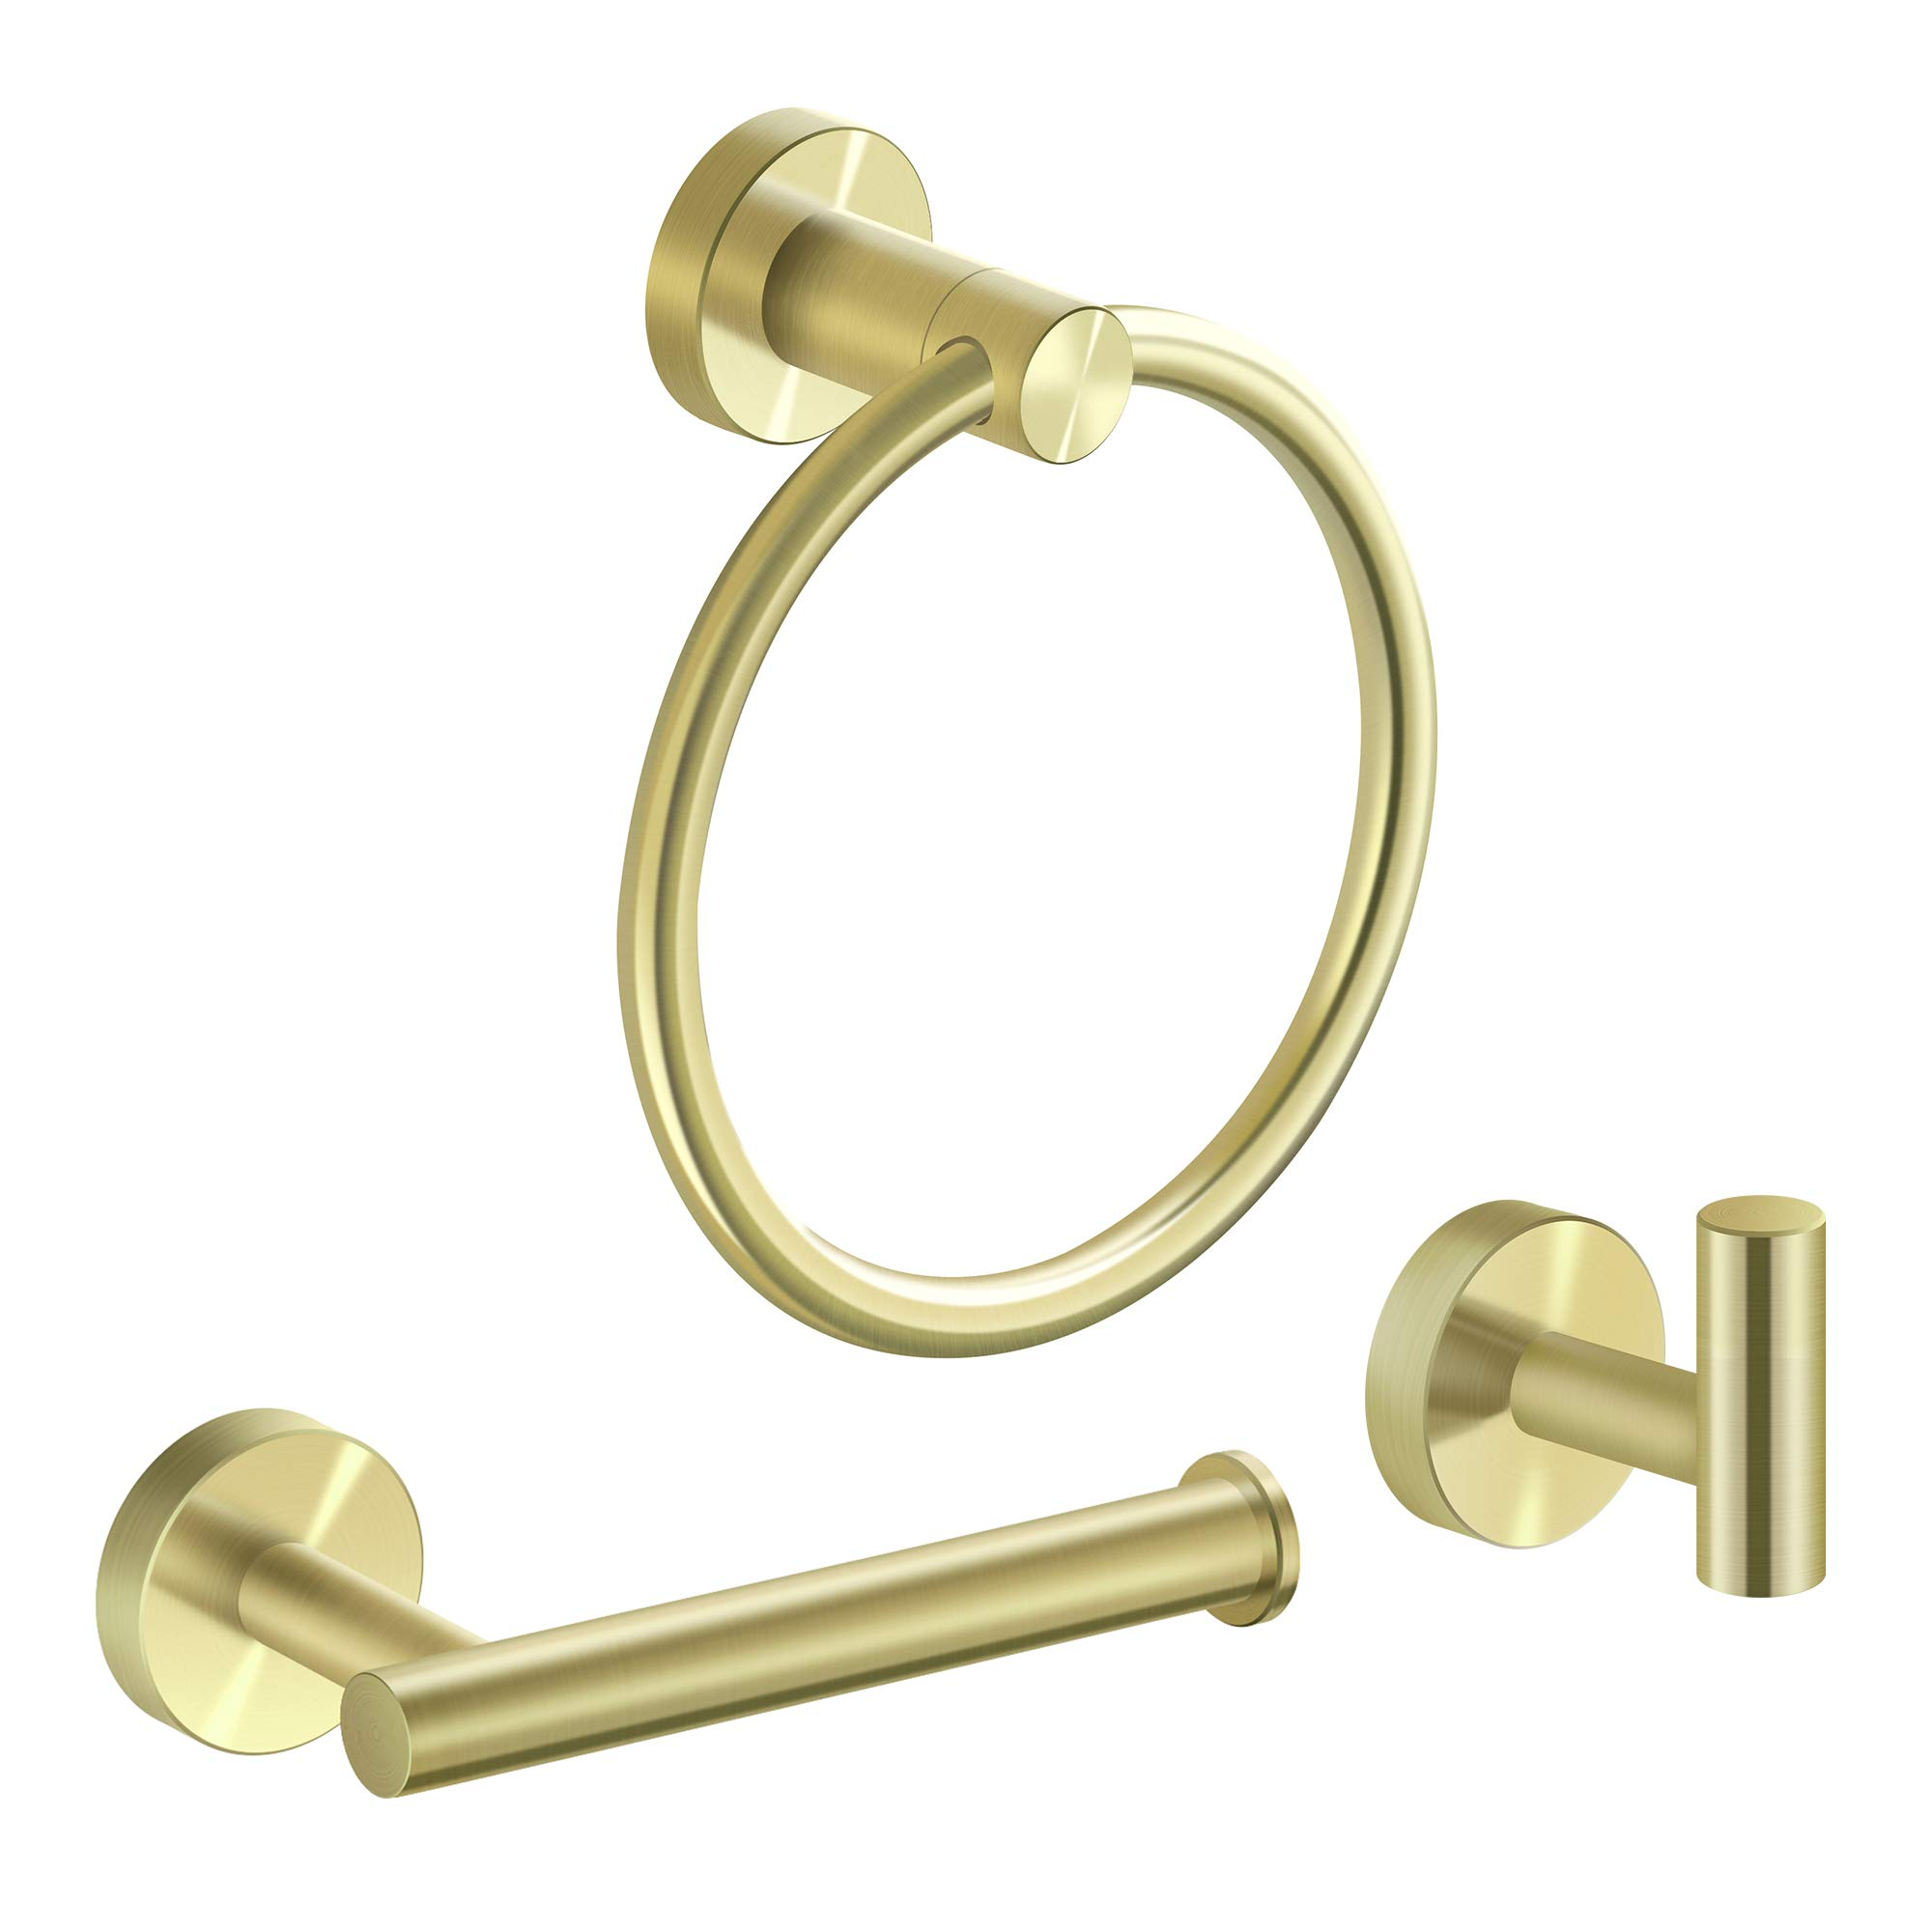 MARMOLUX ACC 3-Pieces Bathroom Hardware Set-Hand Towel Ring, Toilet Paper Roll Holder, Towel Hooks Heavy Duty SUS 304 Stainless Steel Wall Mount Bathroom Accessories 9110G Brushed Gold